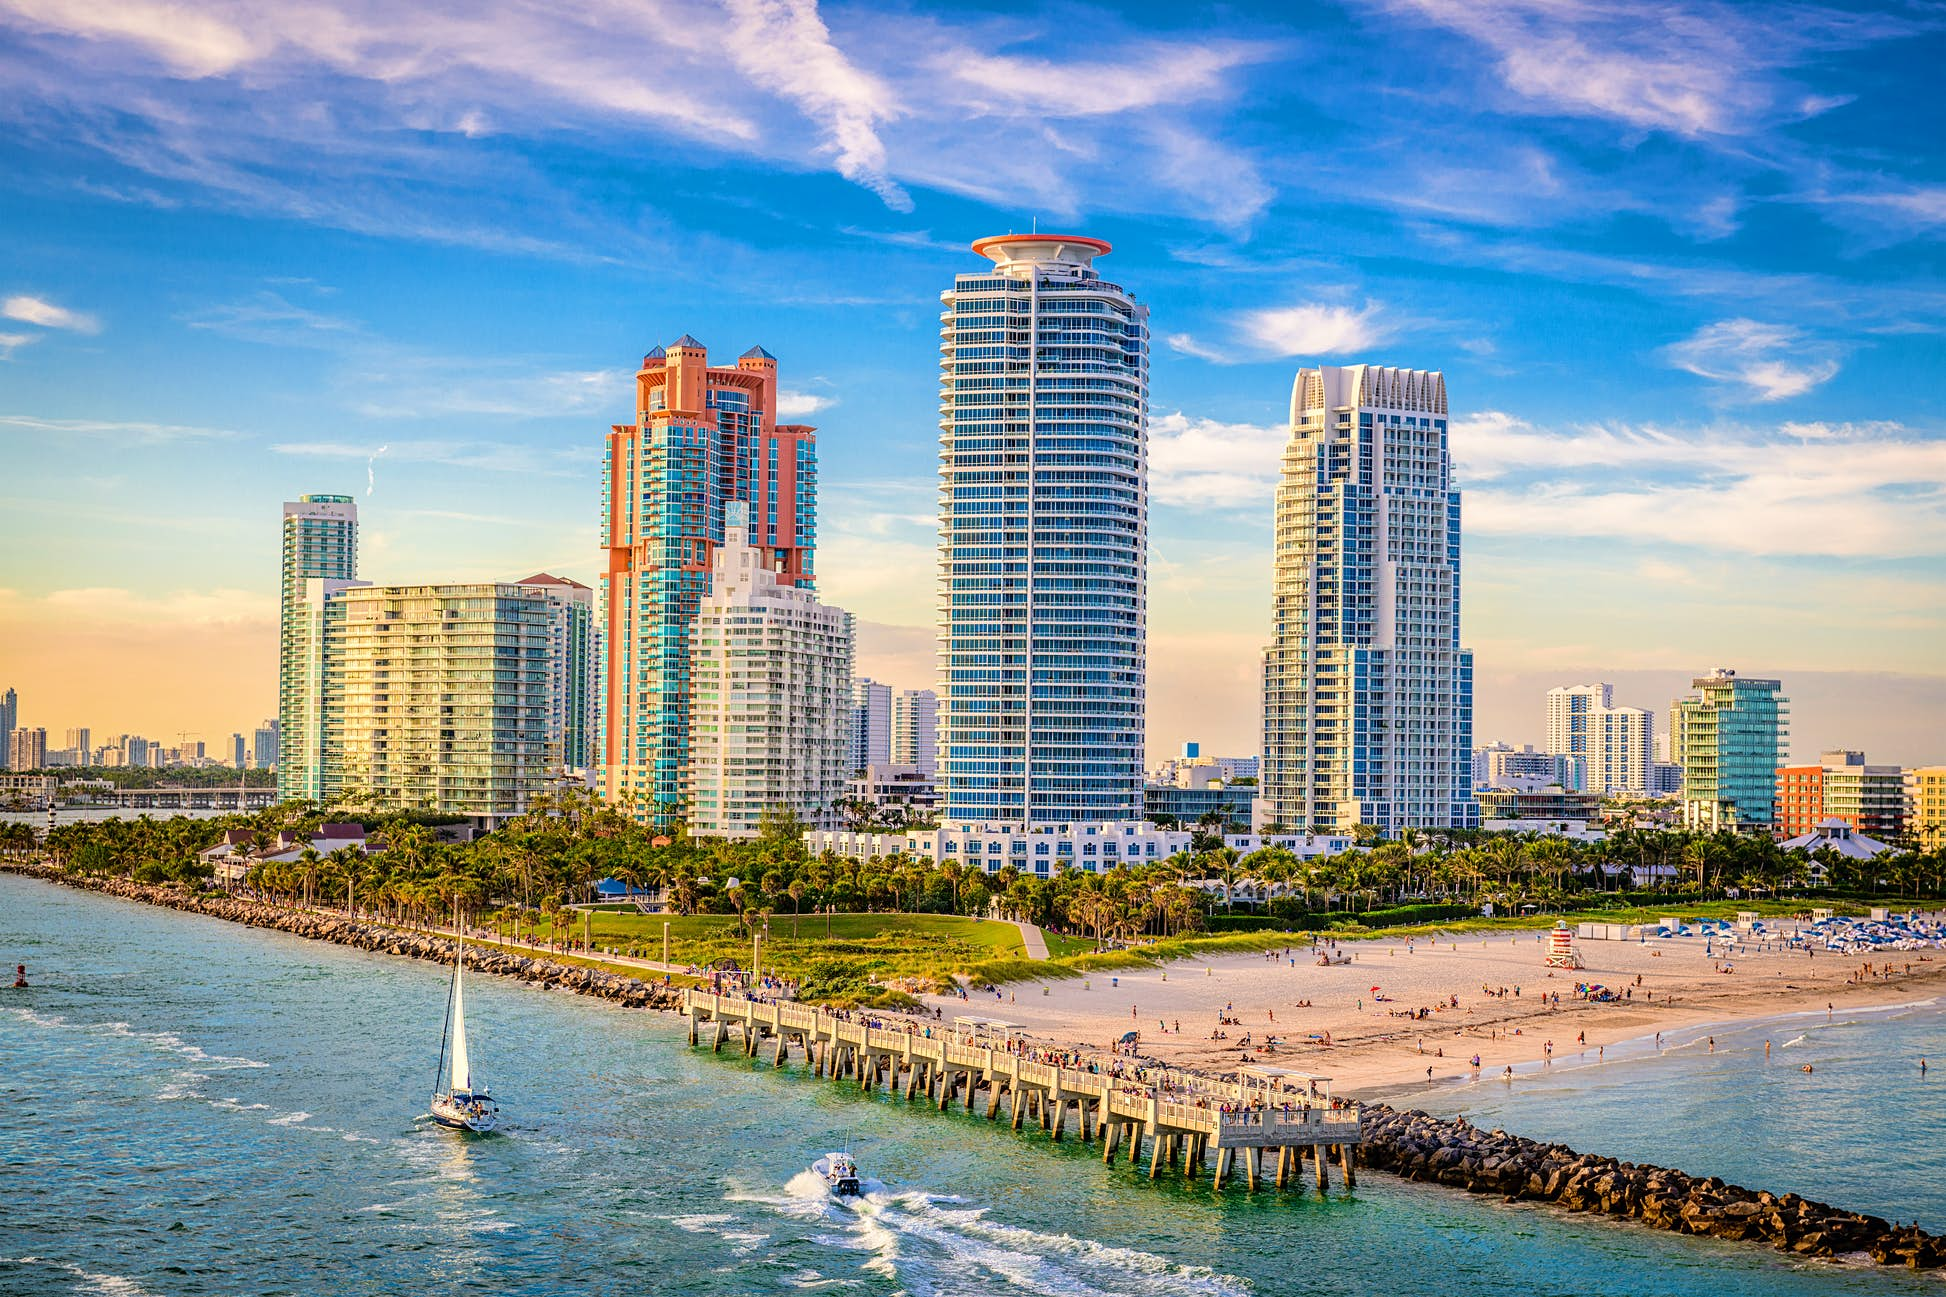 Arrivals from the tri-state area are required to self-isolate upon arriving in Florida ©Sean Pavone/Shutterstock